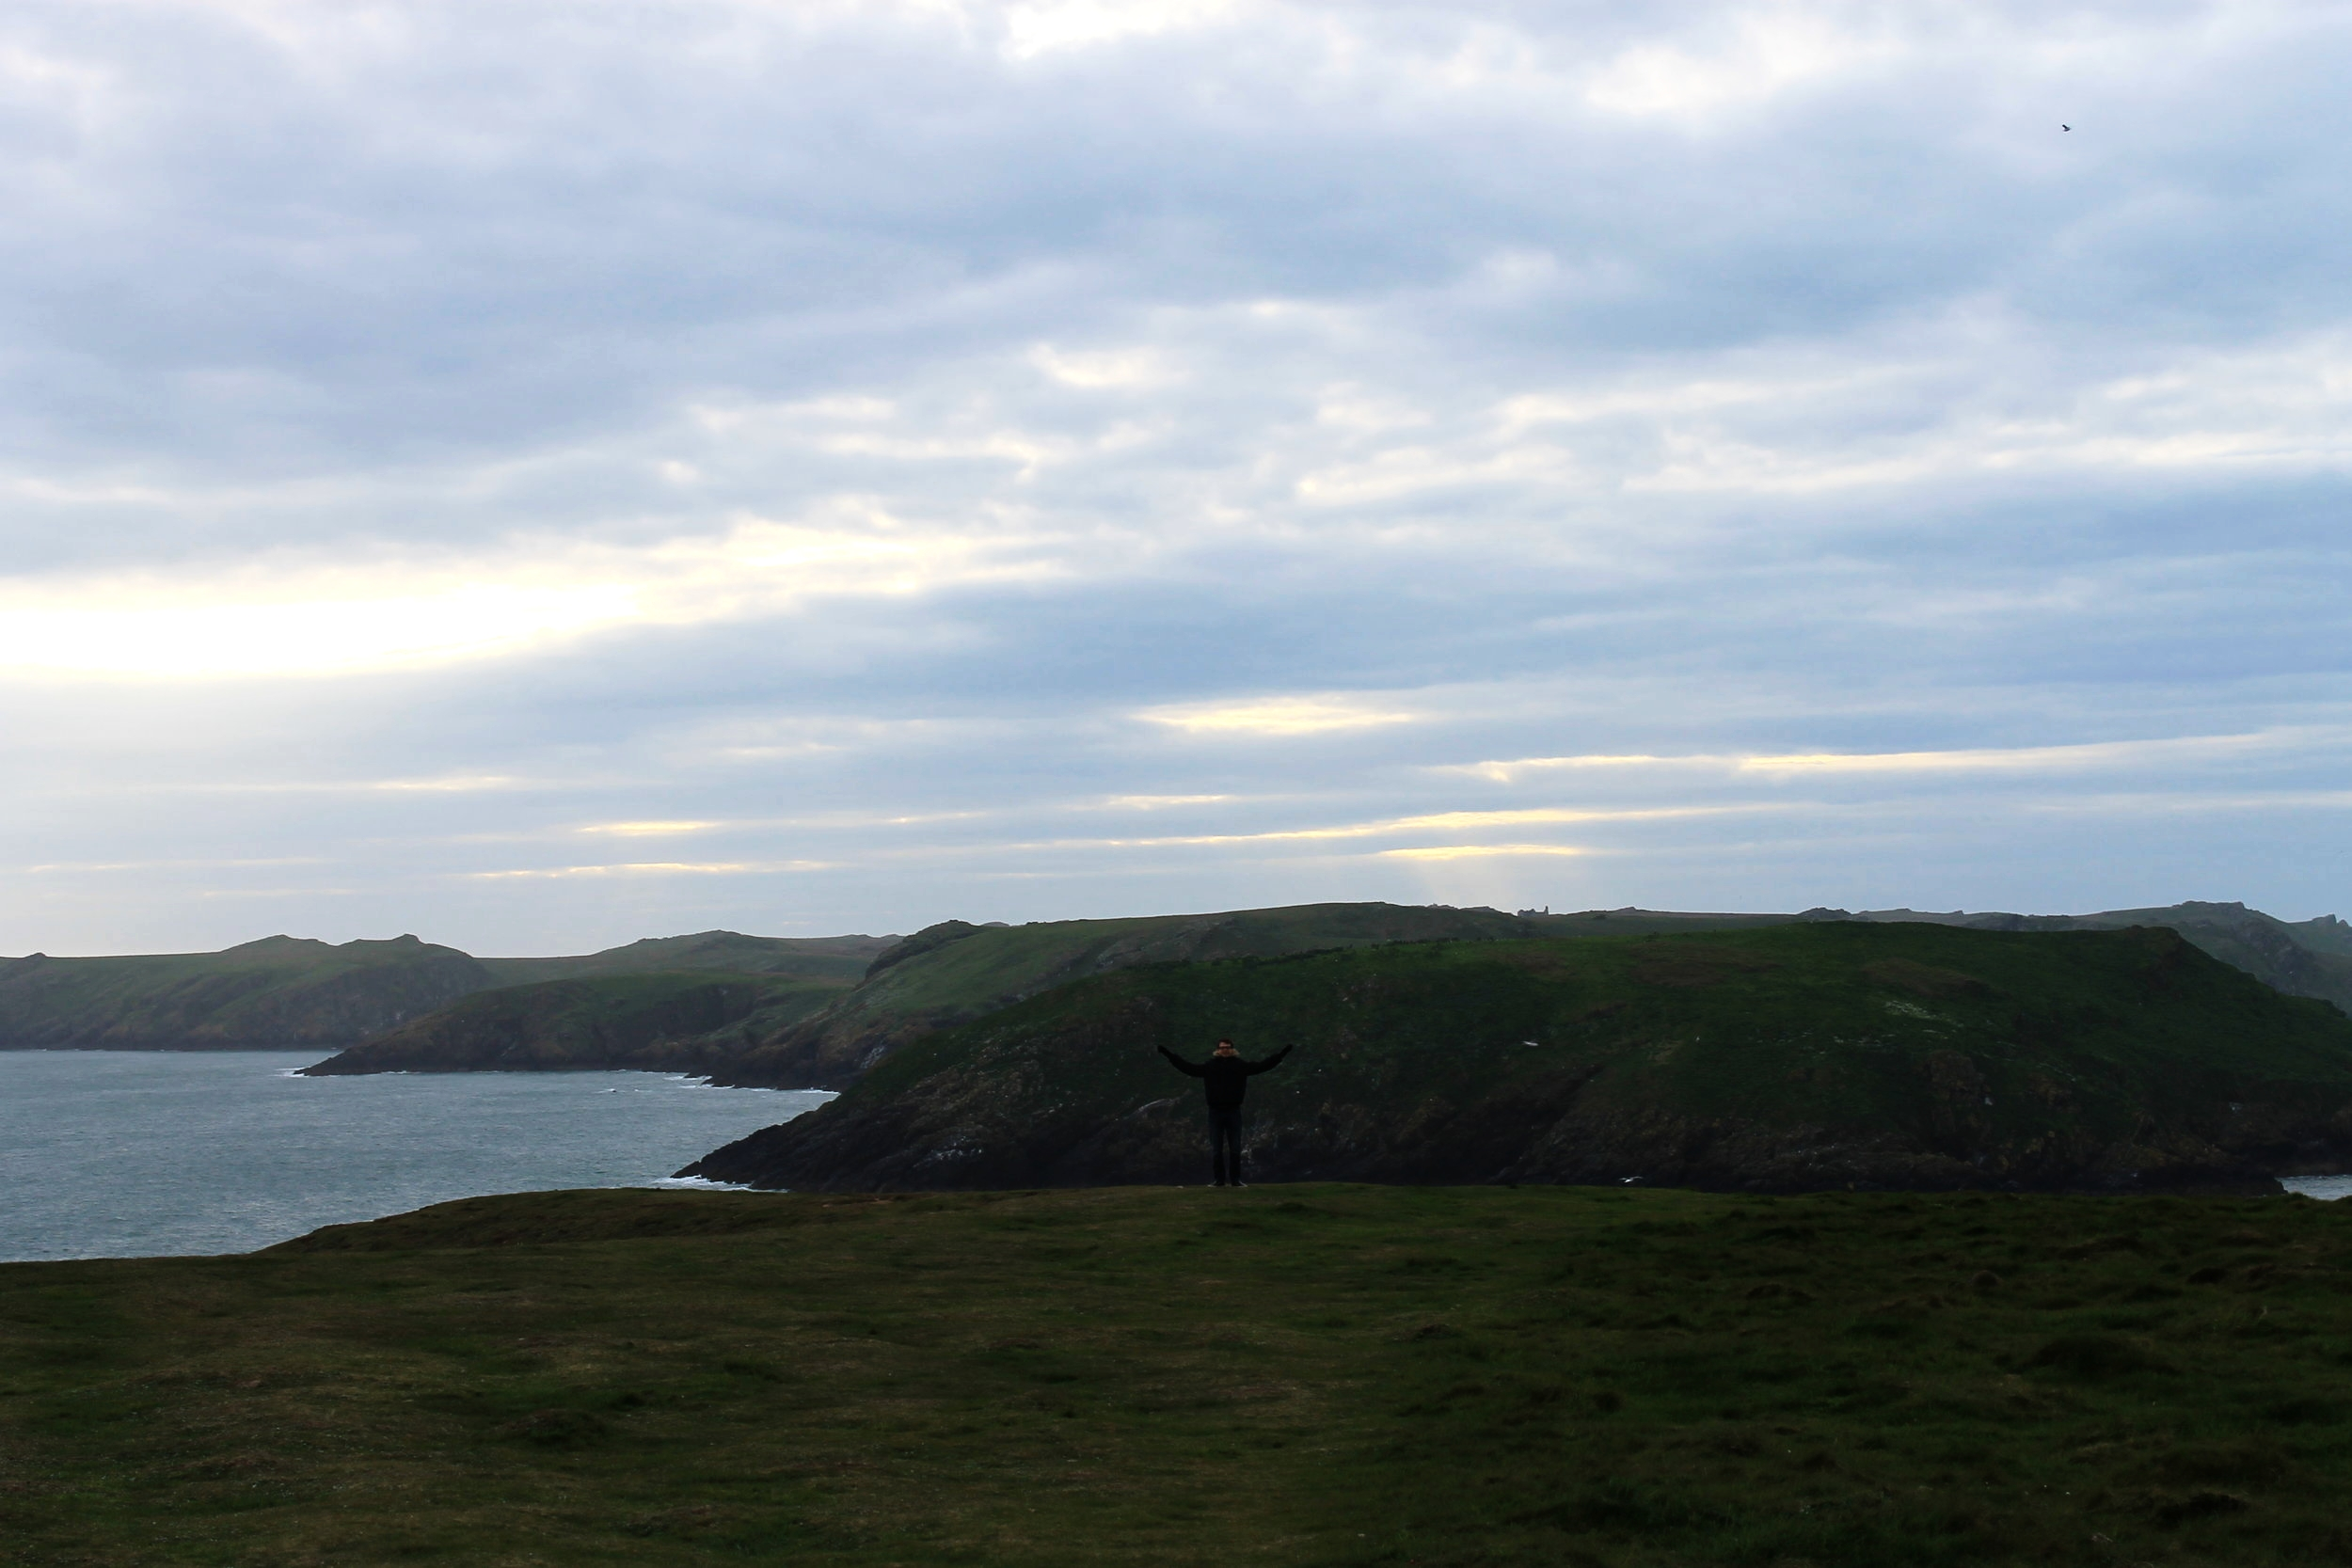 View of Skomer Island at sunset from the Pembrokeshire Coast Path near Martin's Haven